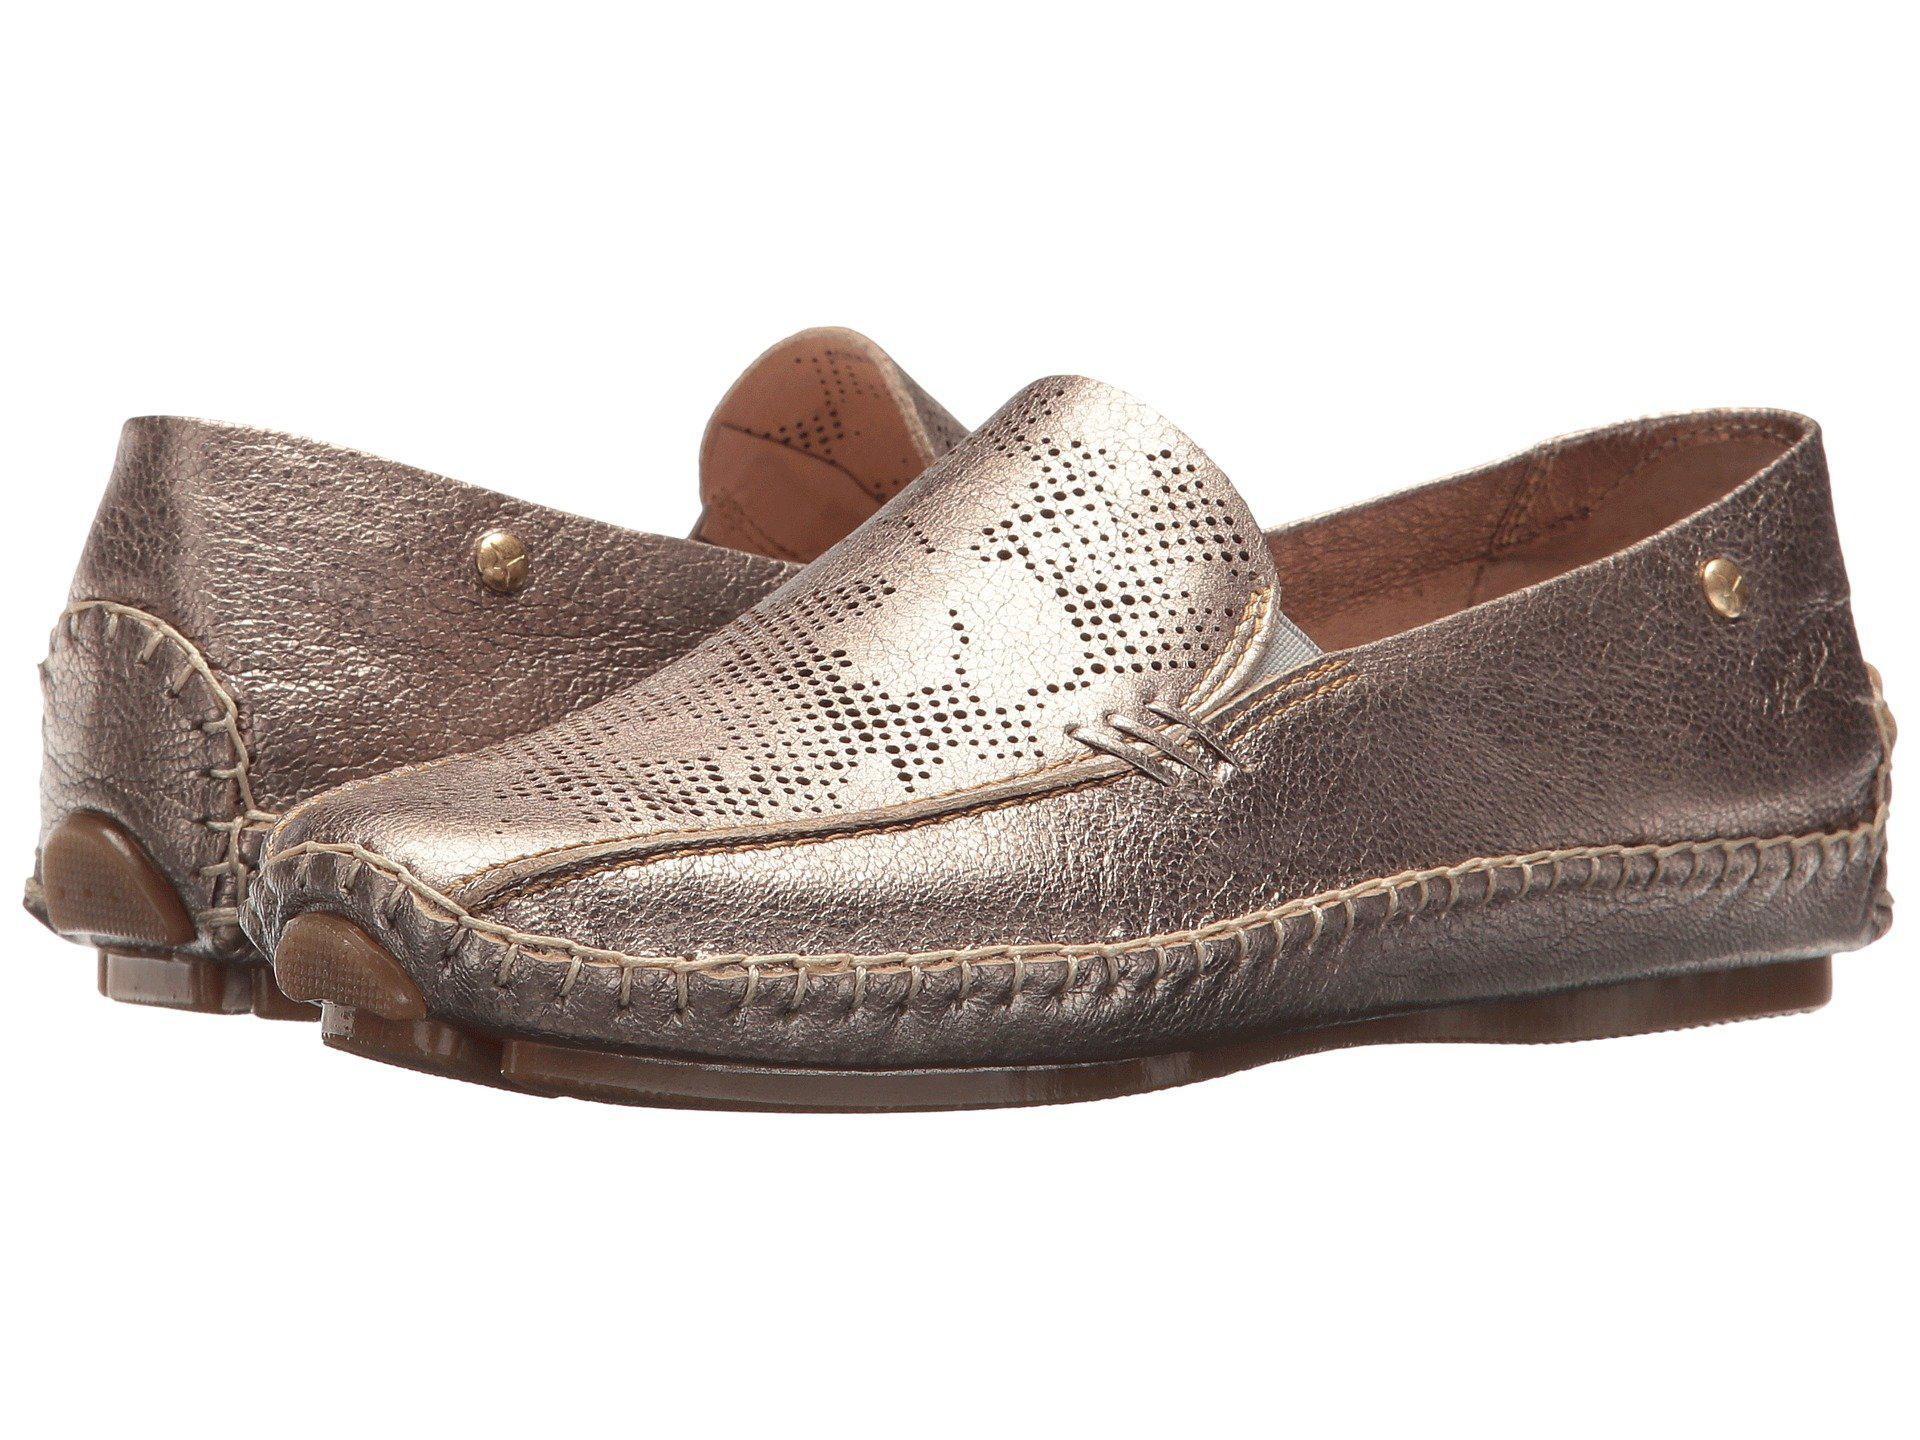 ddc27947e0a Lyst - Pikolinos Jerez 578-3685cl (stone) Women s Slip On Shoes